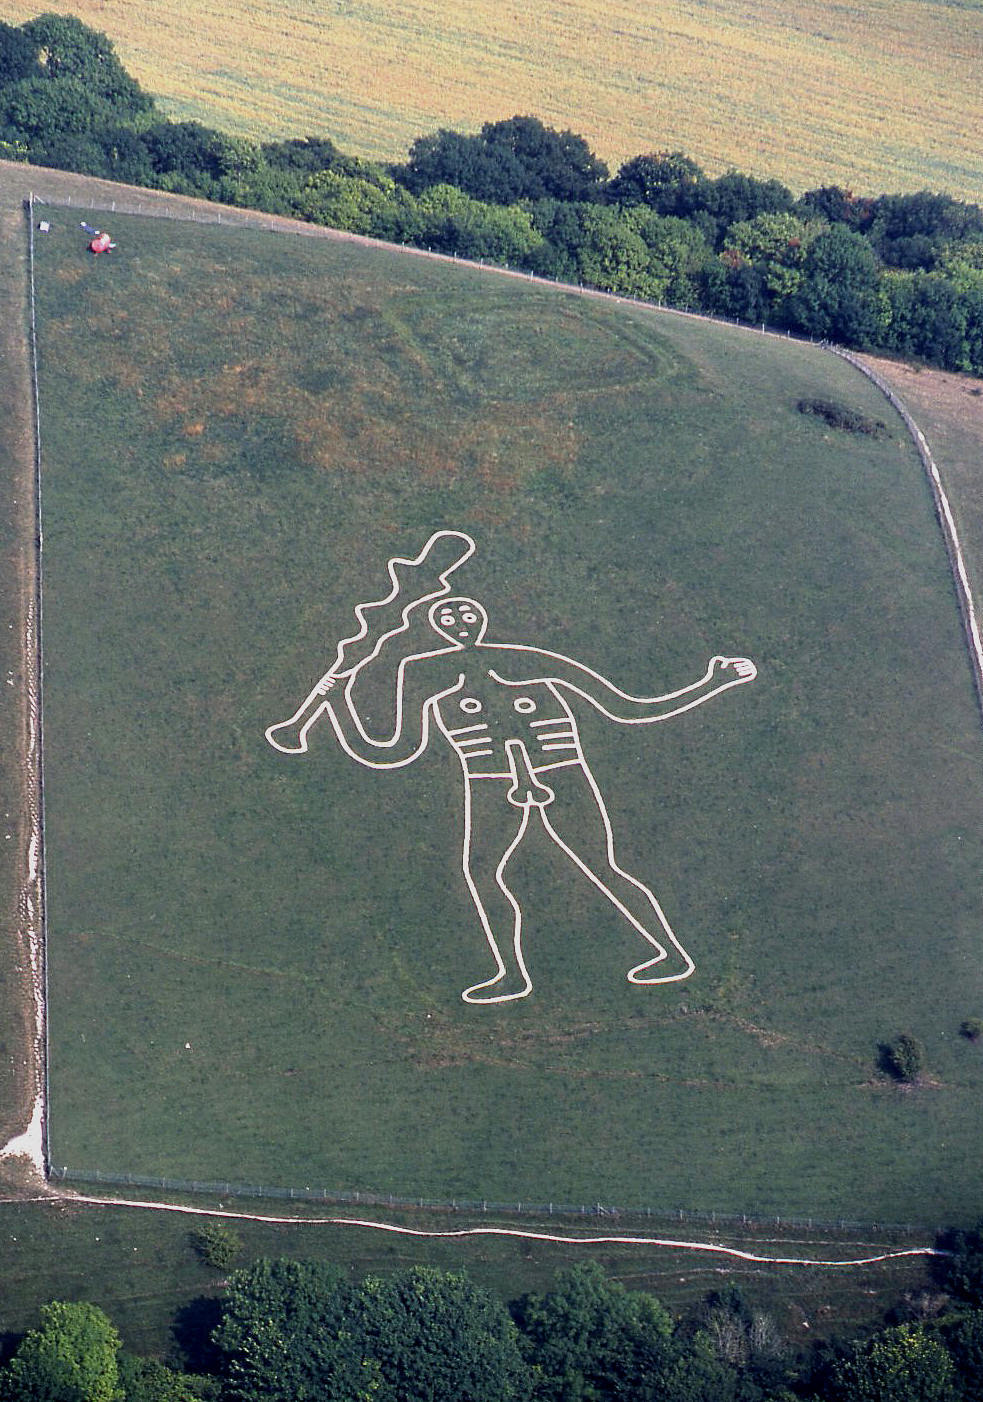 The Cerne Abbas Giant - see note 11